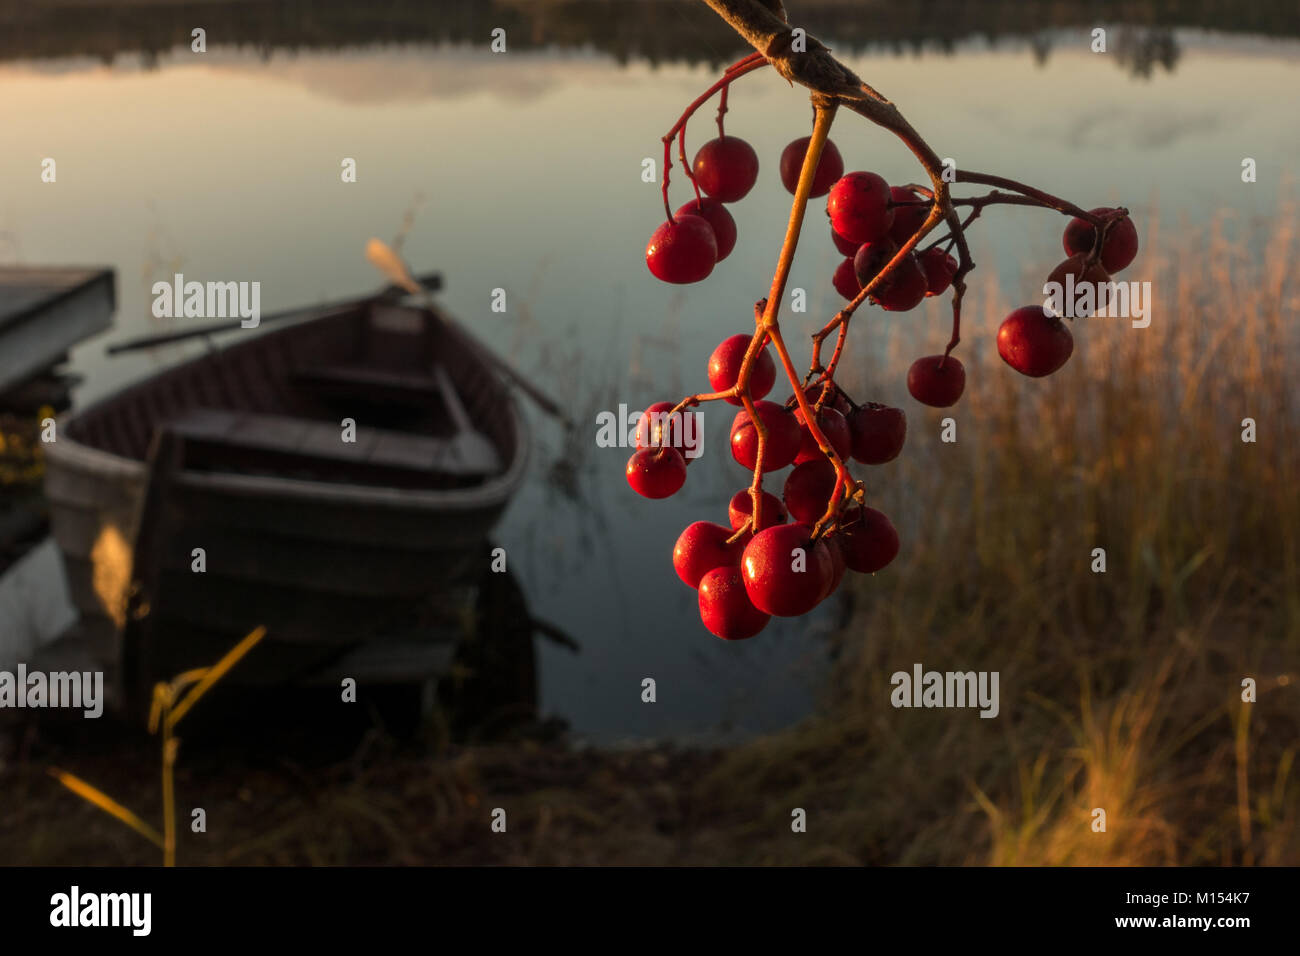 Finnish landscape: close up of red rowan berries with traditional kaisla rowing boat on a lake in Finland - Stock Image